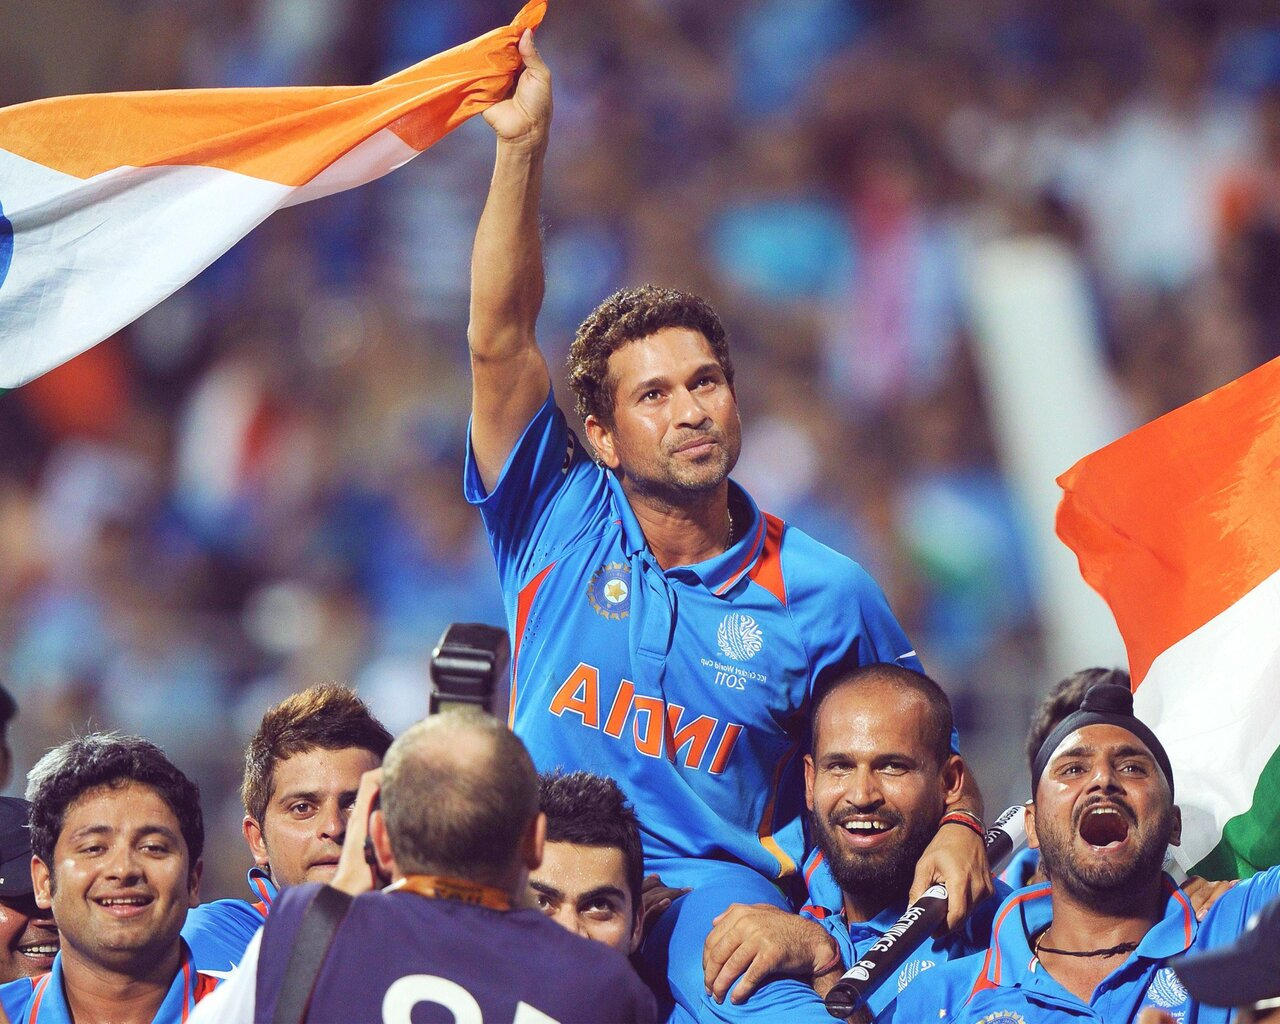 1280x1024 sachin tendulkar 1280x1024 resolution hd 4k wallpapers